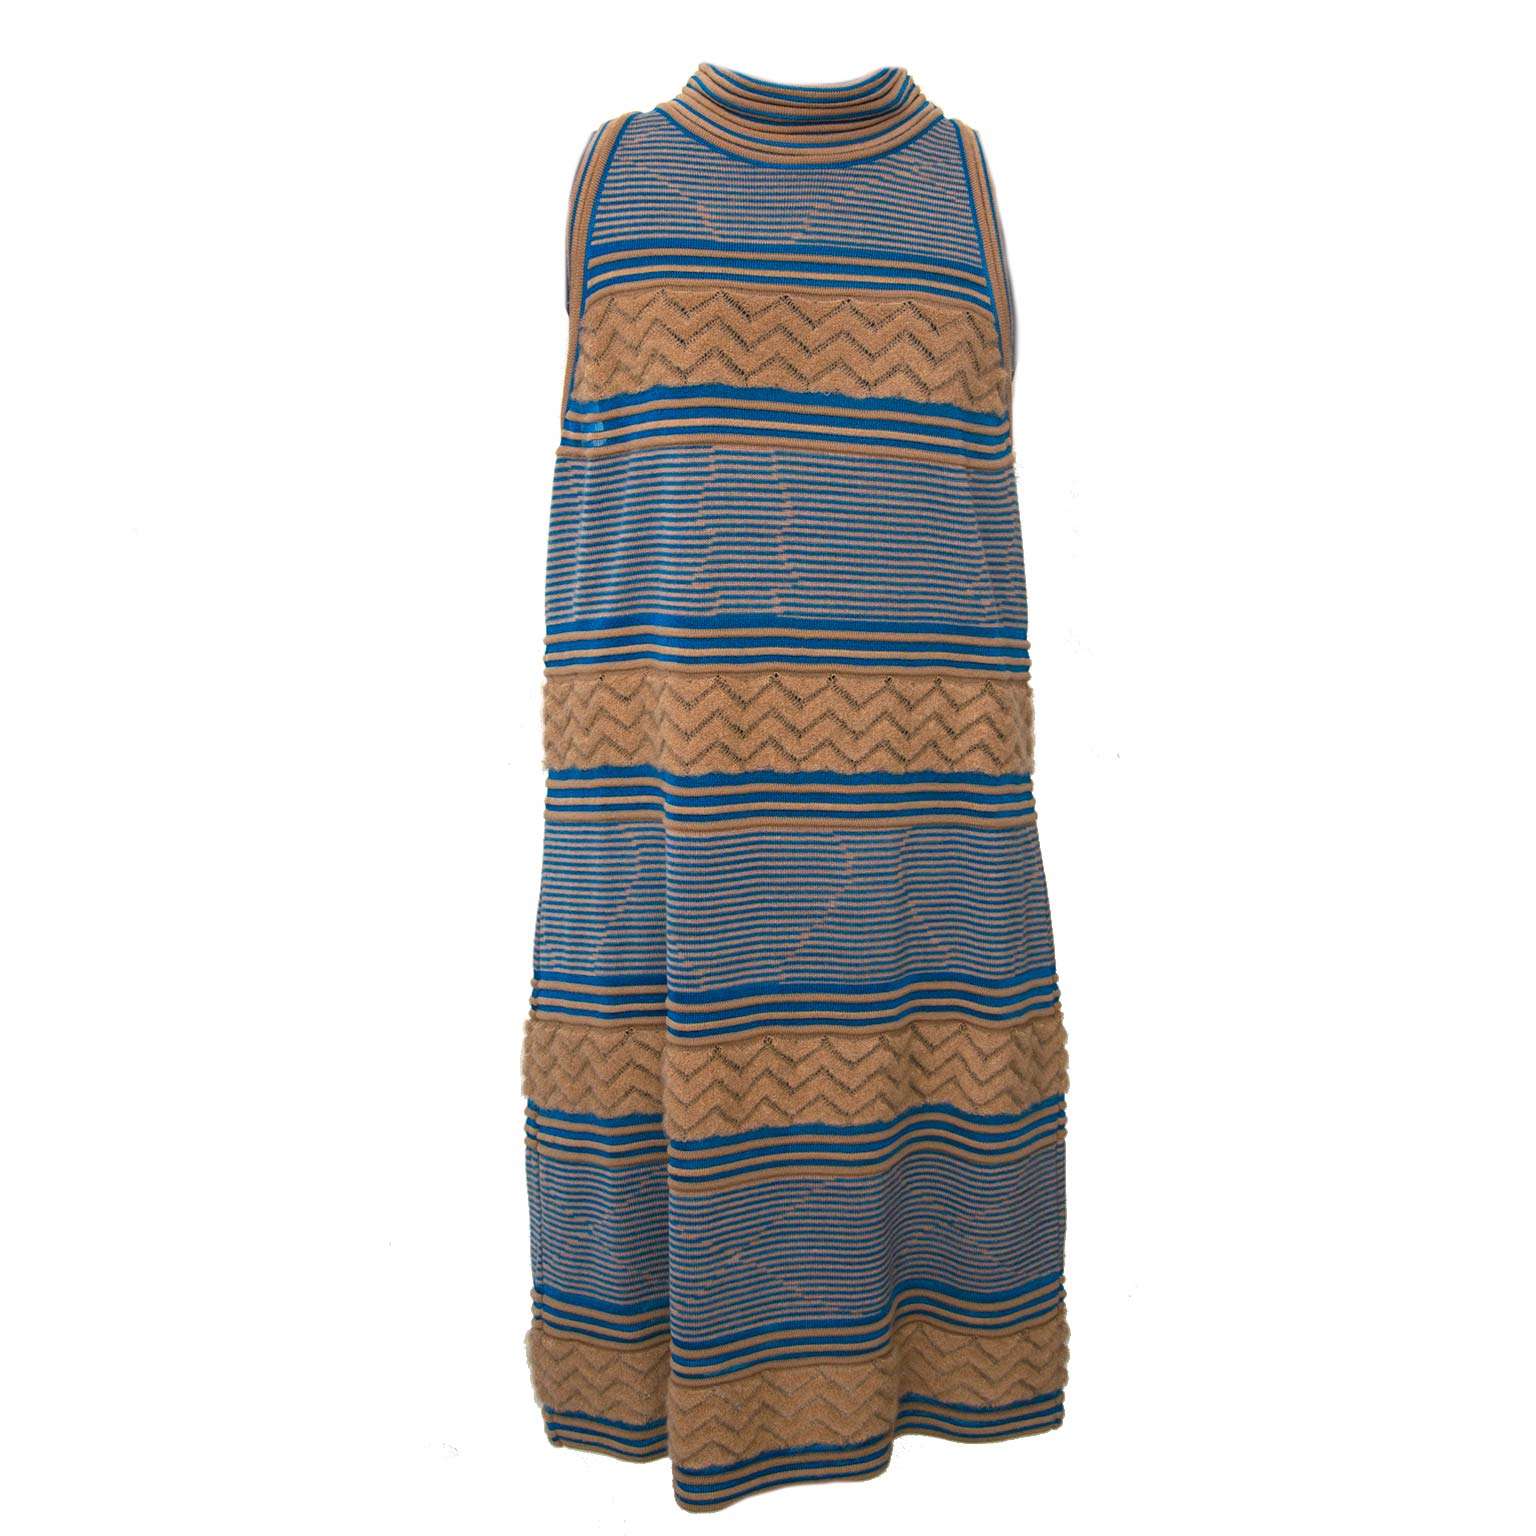 missoni clothing now online at labellov.com for the best price. missoni dress cardigan and scarf